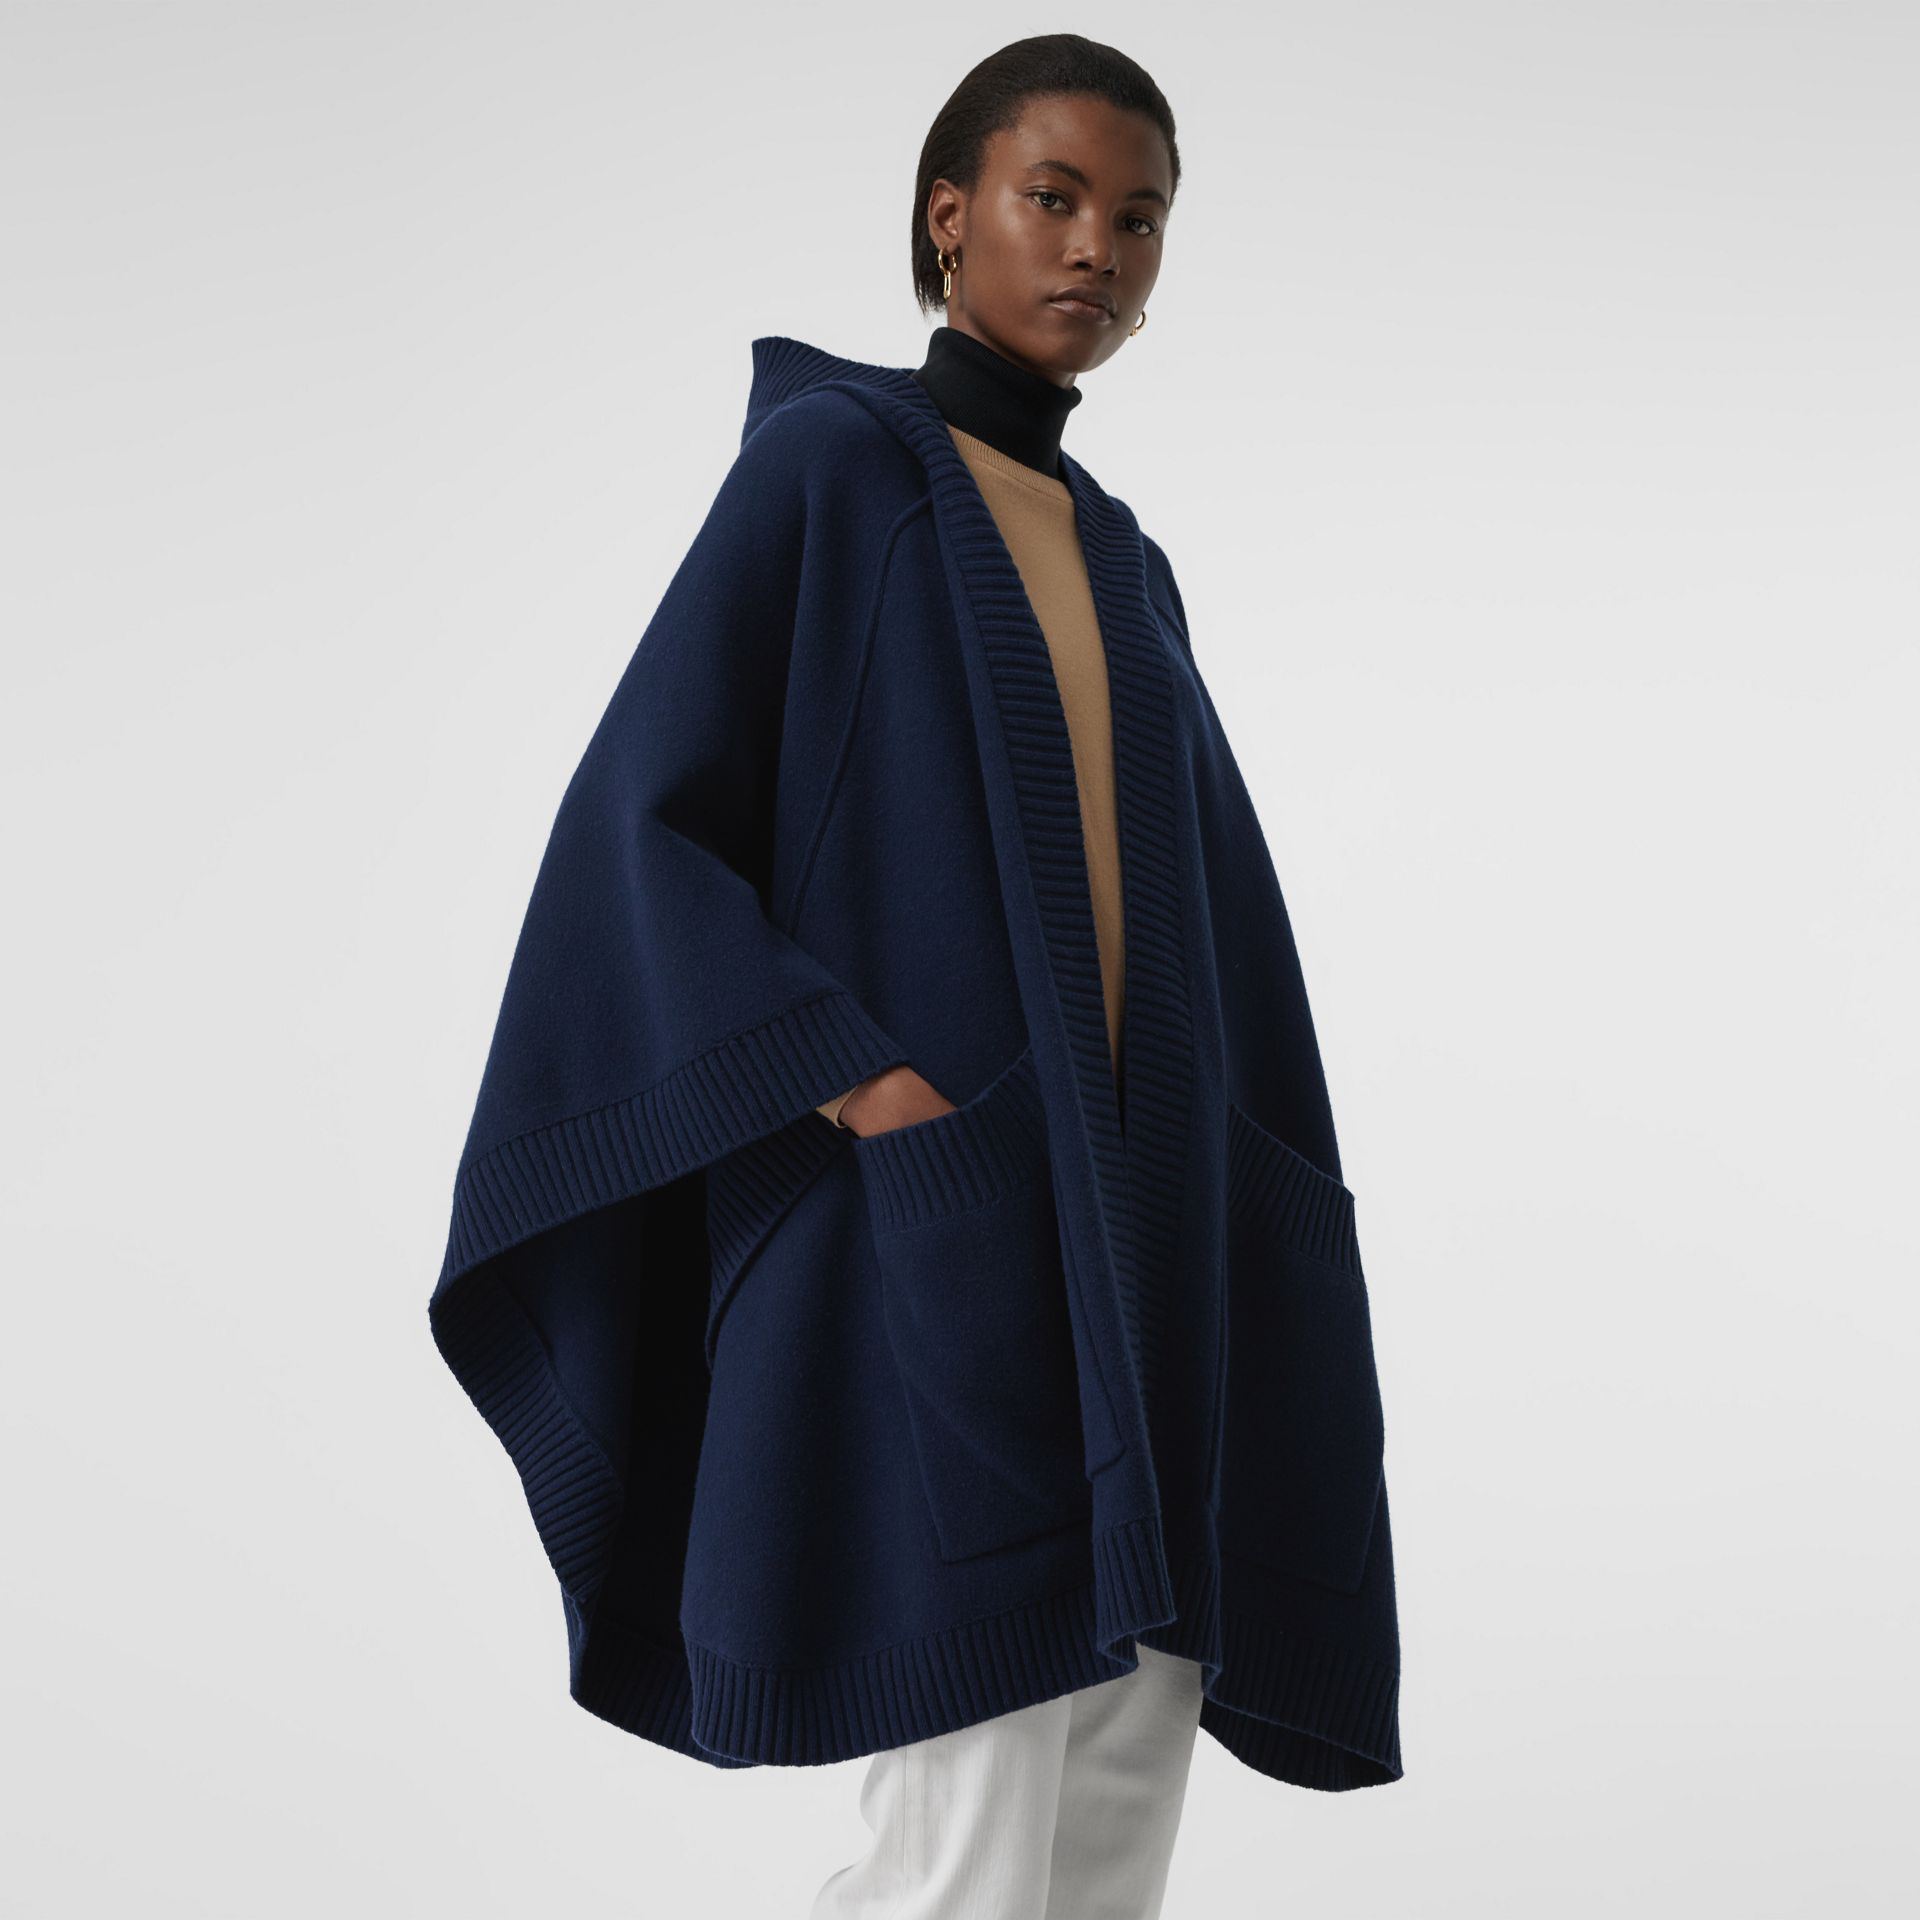 Crest Wool Blend Jacquard Hooded Cape in Navy - Women | Burberry Canada - gallery image 2